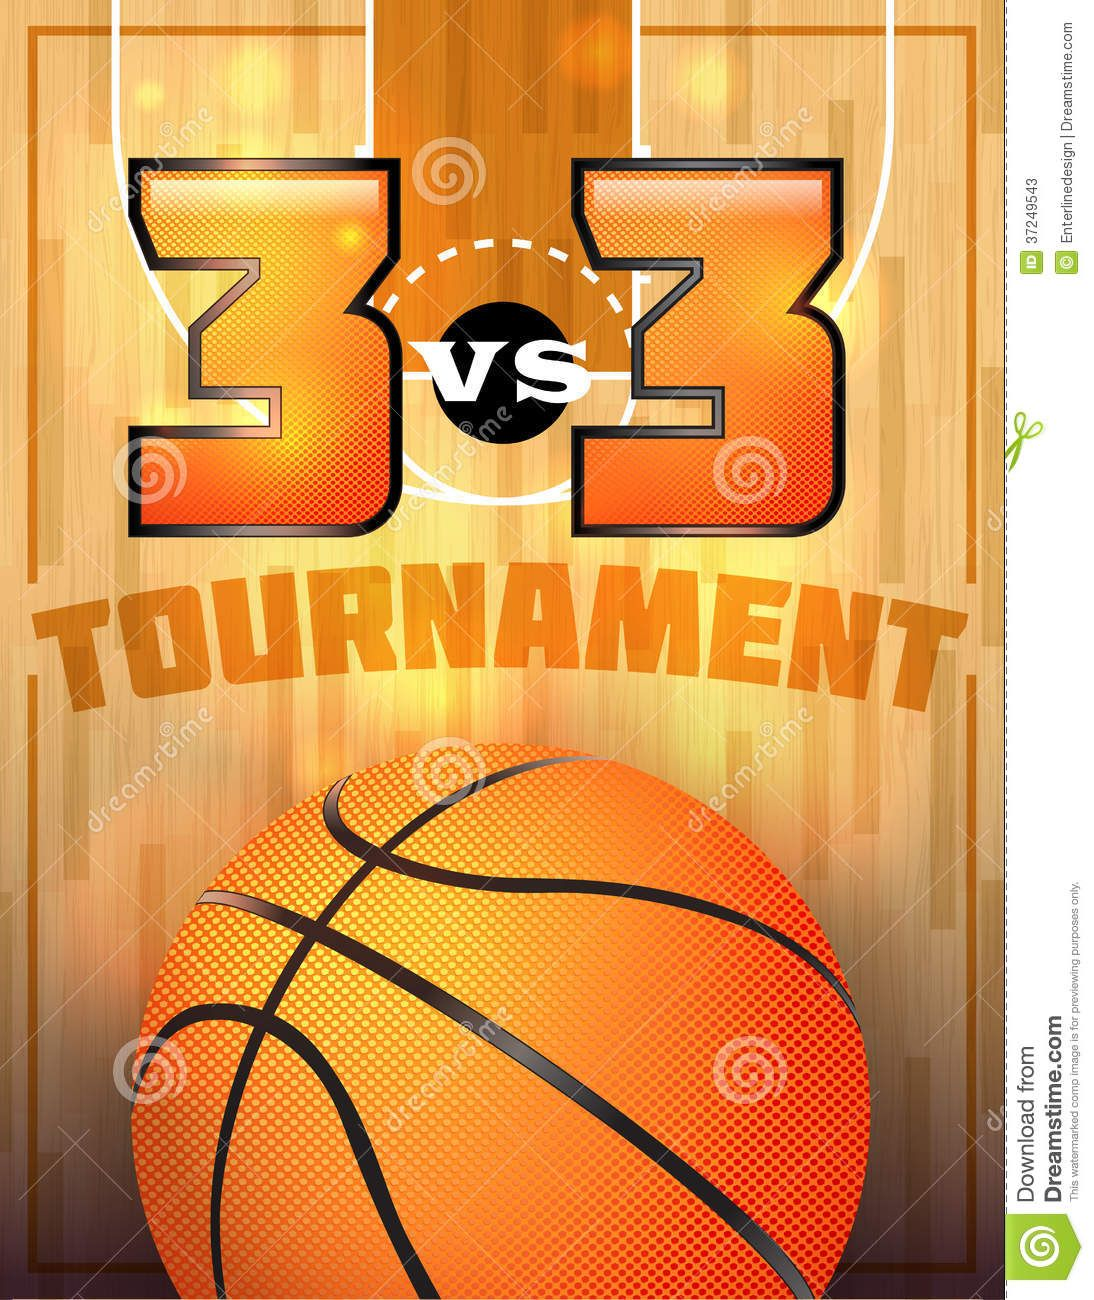 The Appealing 002 Template Ideas On Basketball Tournament Flyer Free Pertaining To 3 On 3 Basketball Tournament Fly Basketball Tournament Flyer Free Basketball